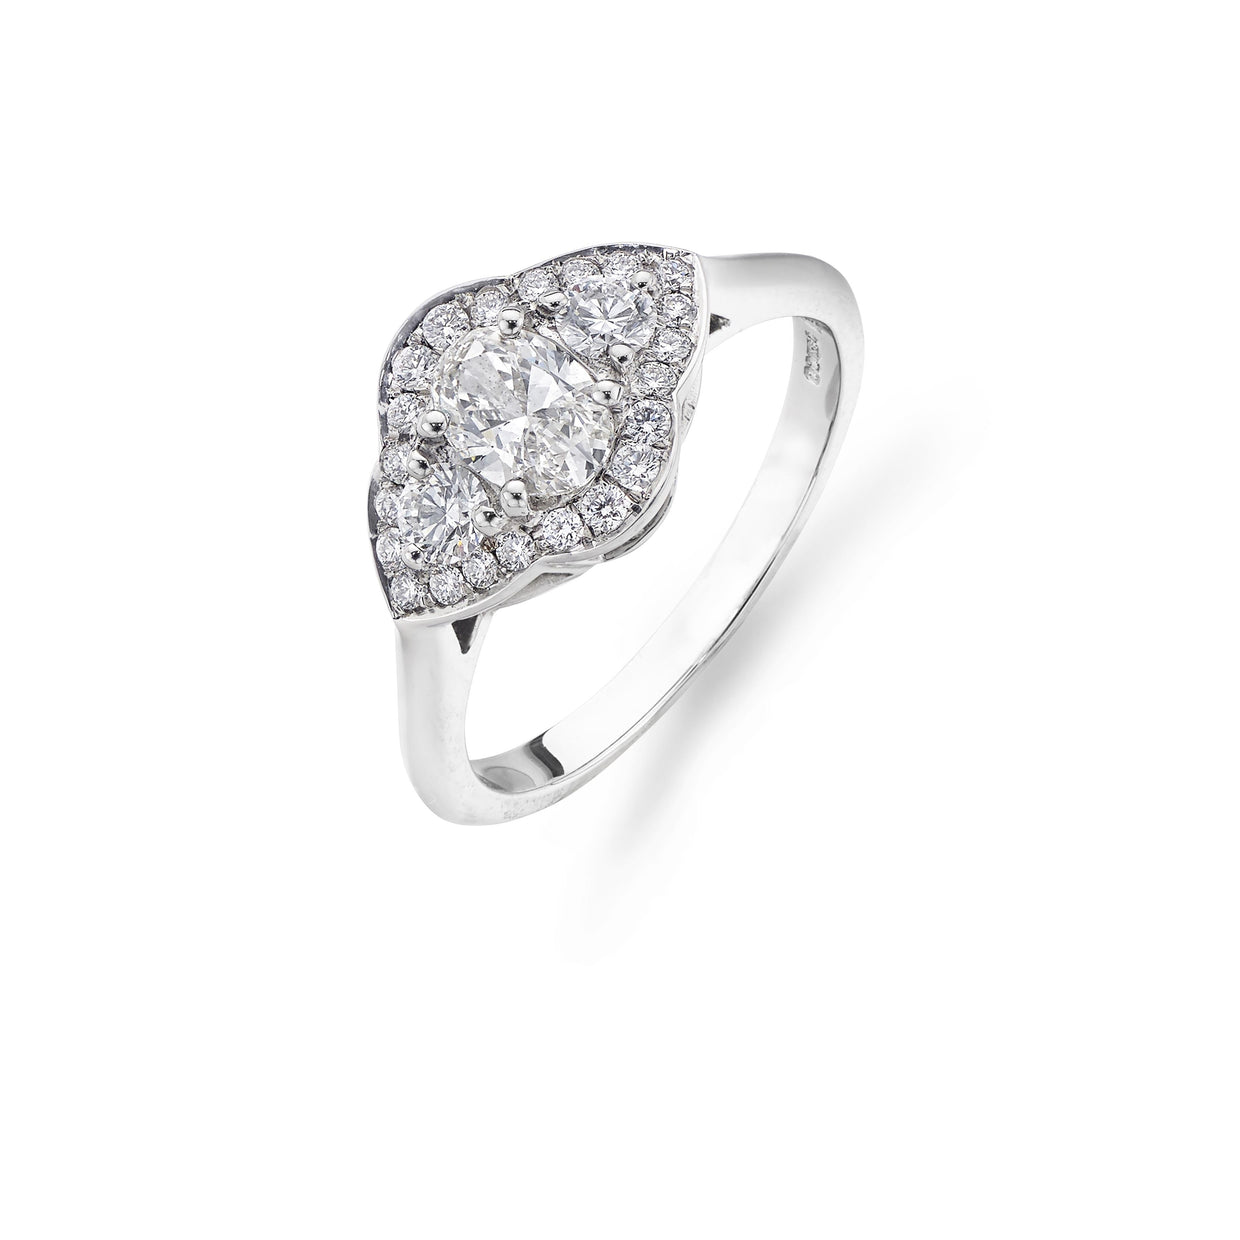 Cluster Diamond Engagement Ring in Platinum - Hamilton & Inches